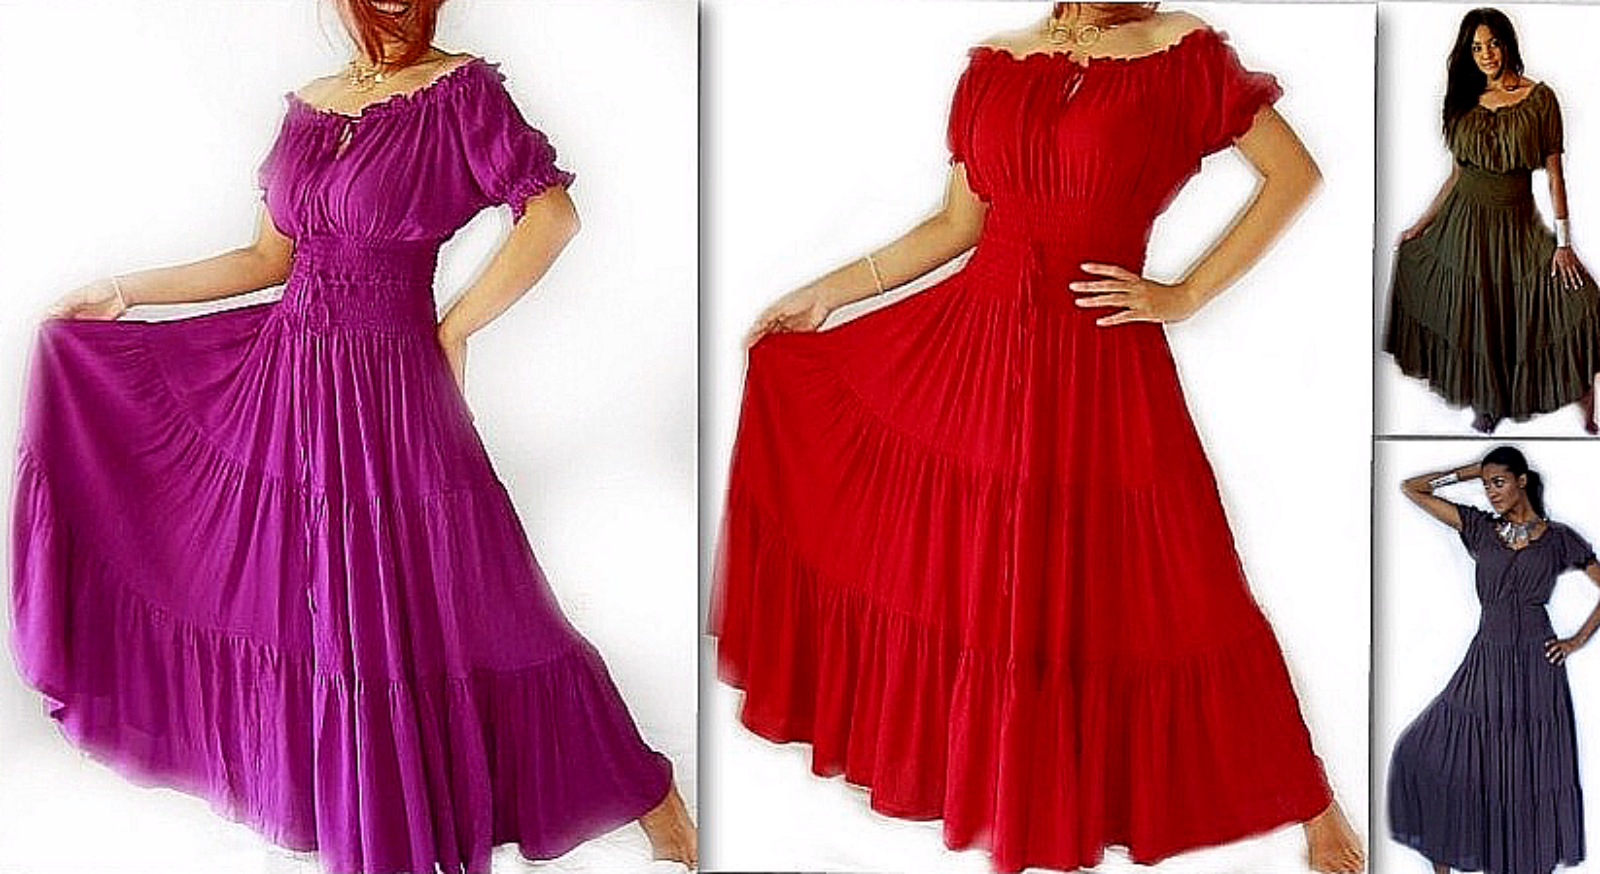 Marvelous Mexican Peasant Dresses | lotustraders clothing